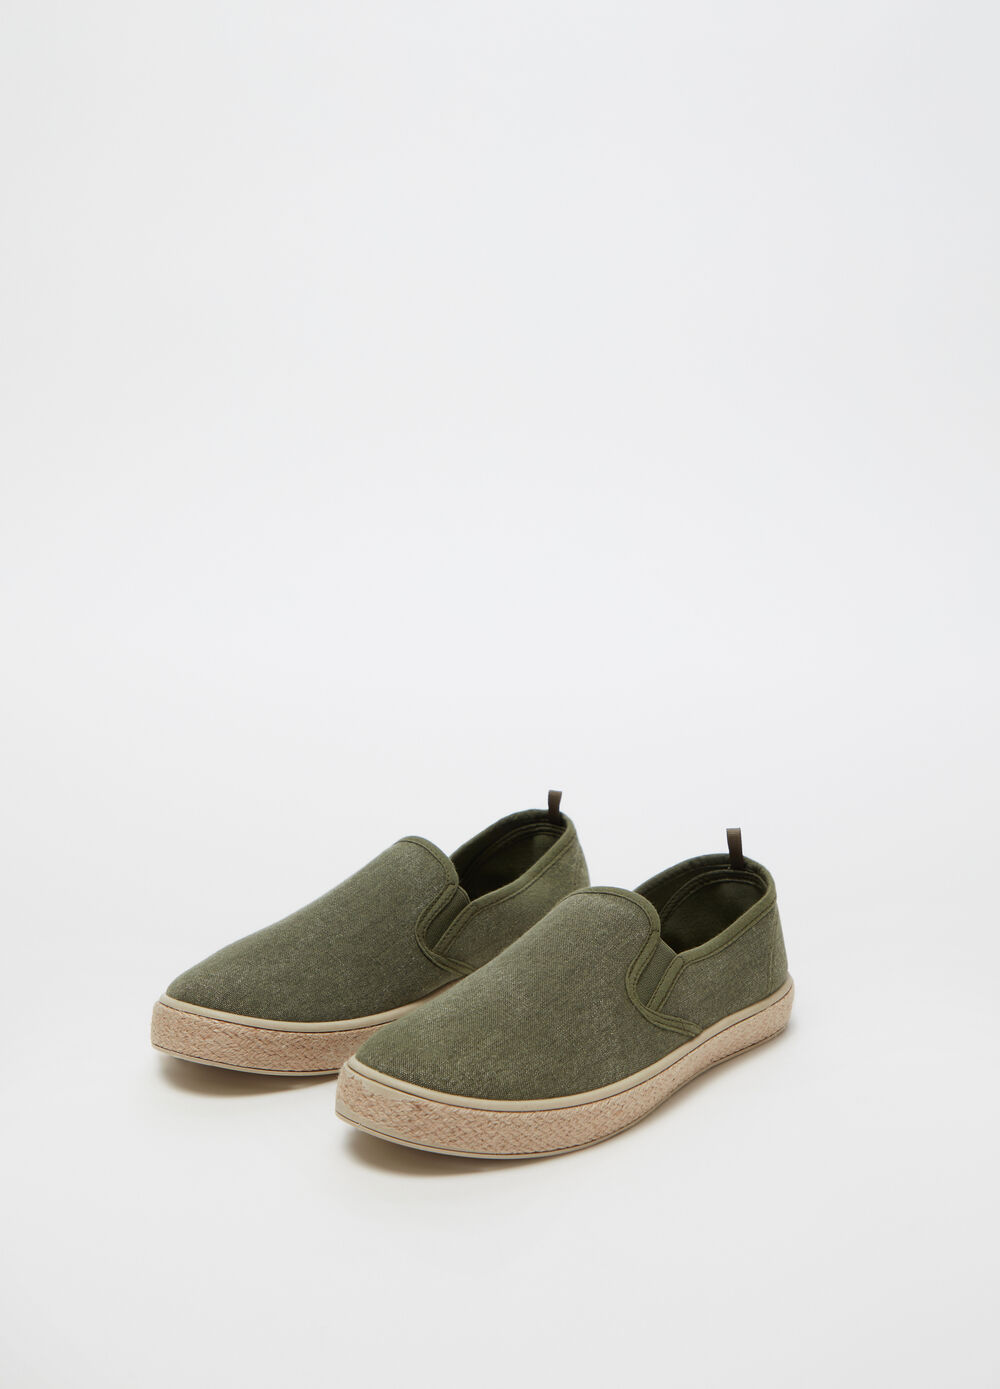 Slip-ons with cord sole